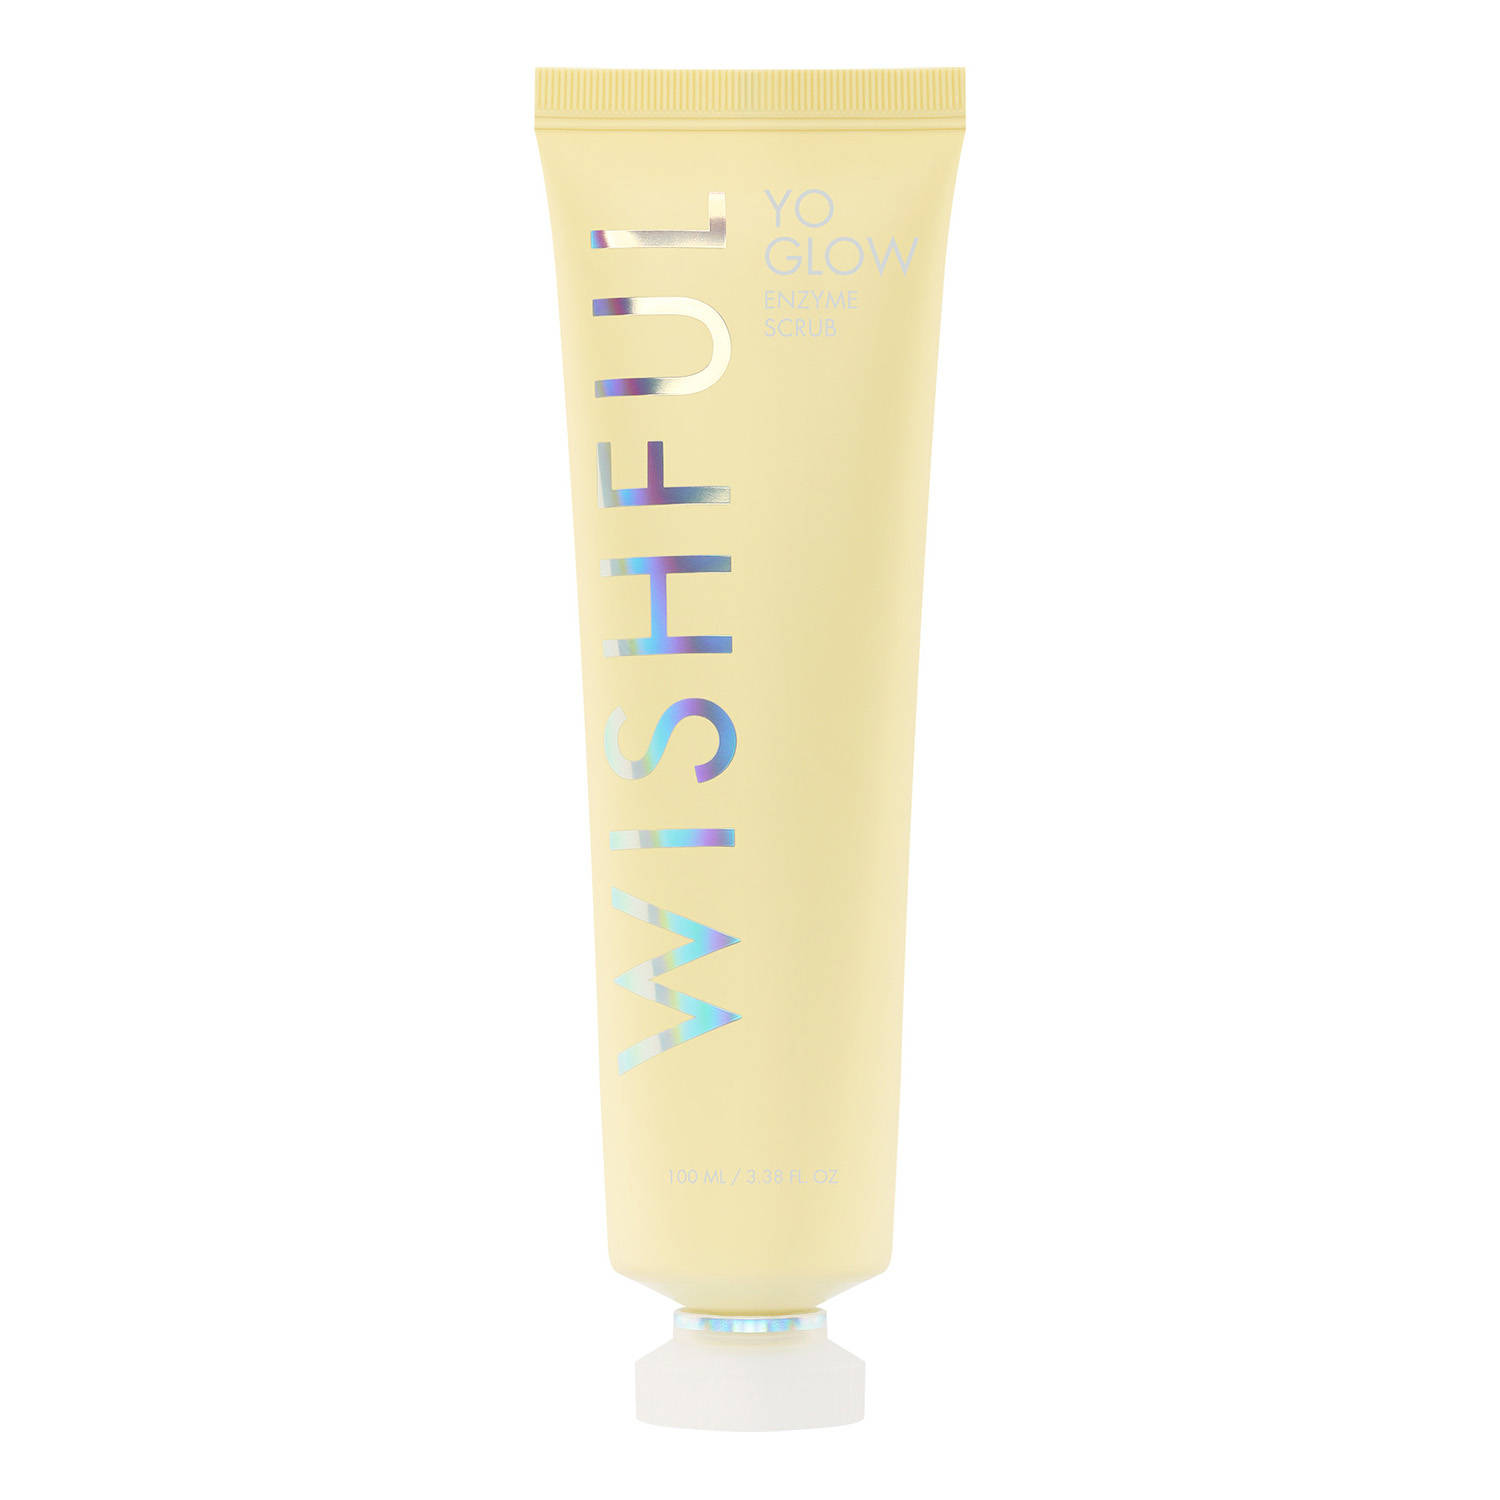 WISHFUL Yo Glow Enzyme Exfoliante